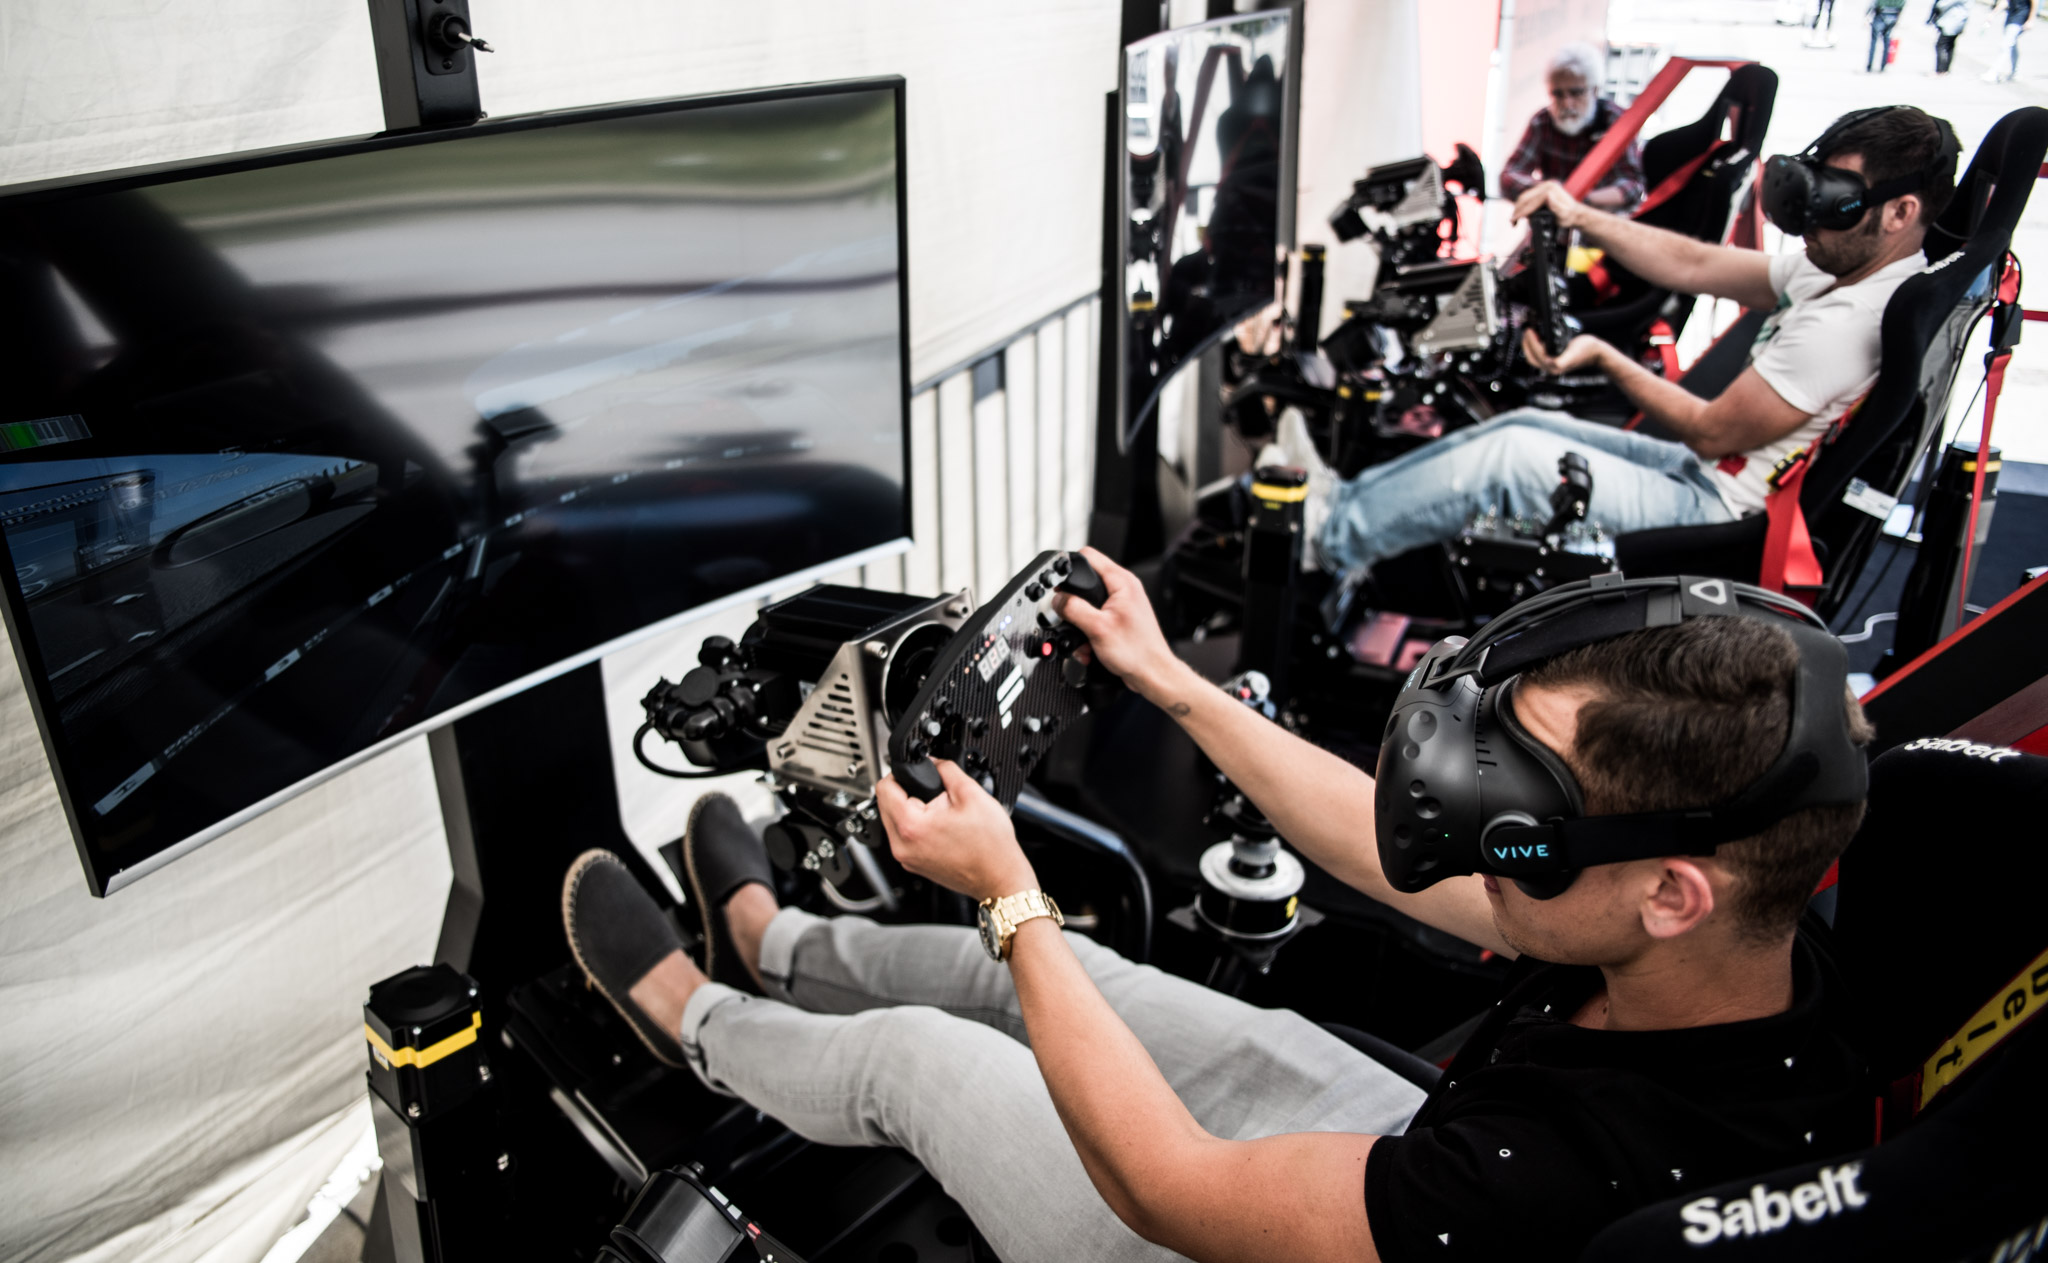 The 3-in-1 VR Motion Simulator